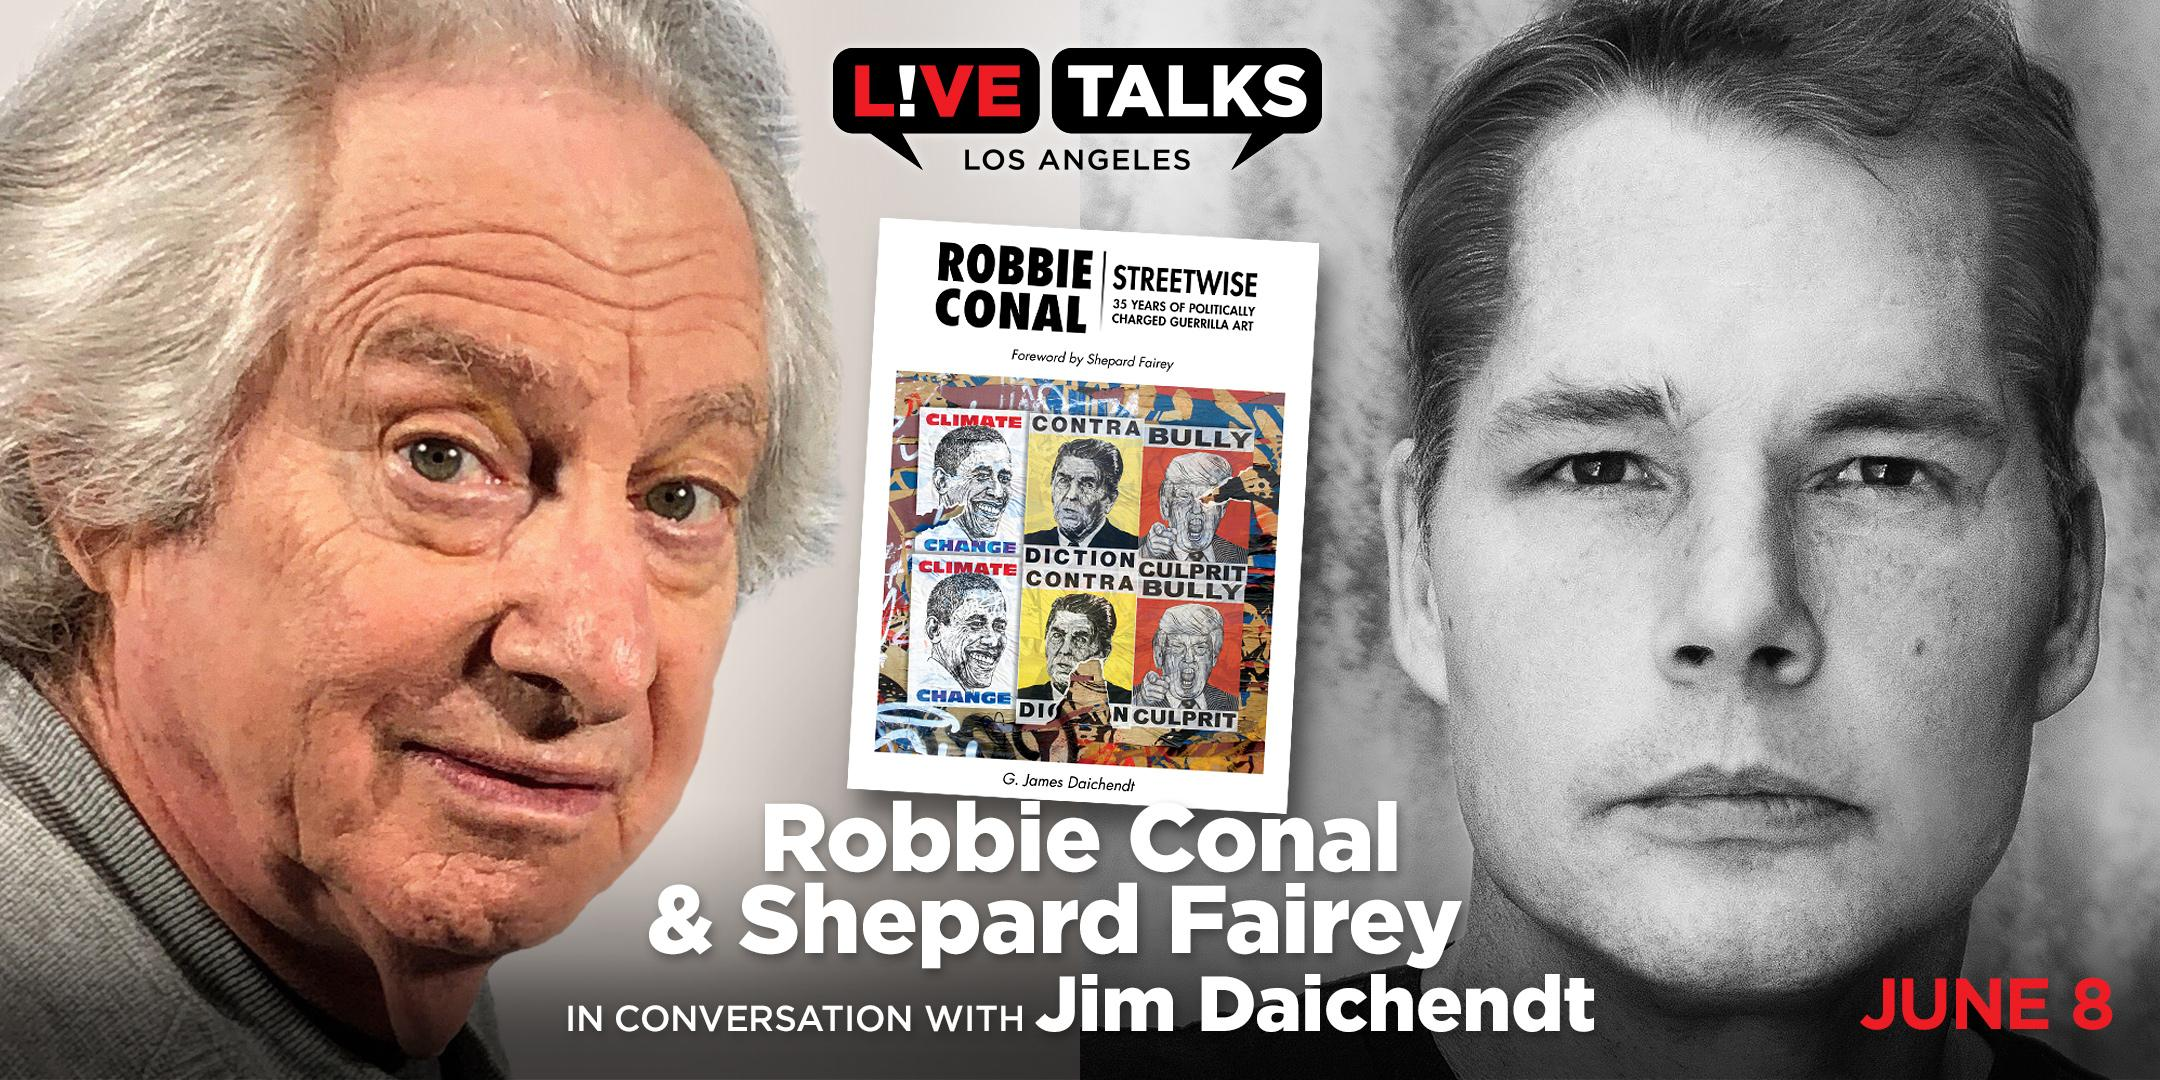 Robbie Conal & Shepard Fairey in conversation with Jim Daichendt